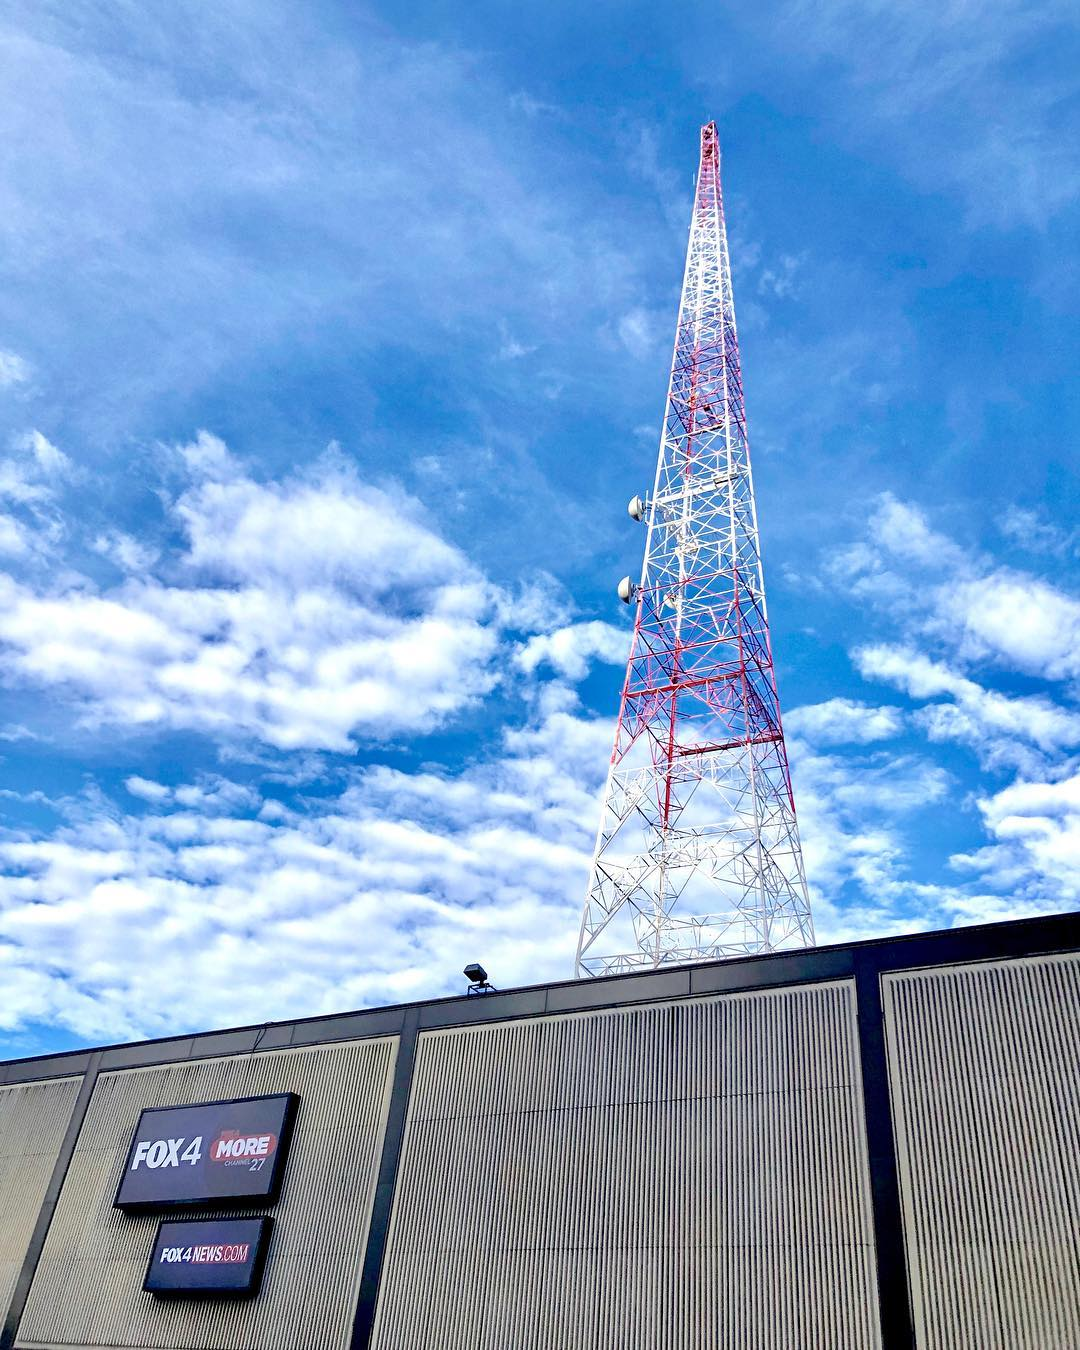 KDFW Fox 2 News Transmission Tower Dallas, Texas